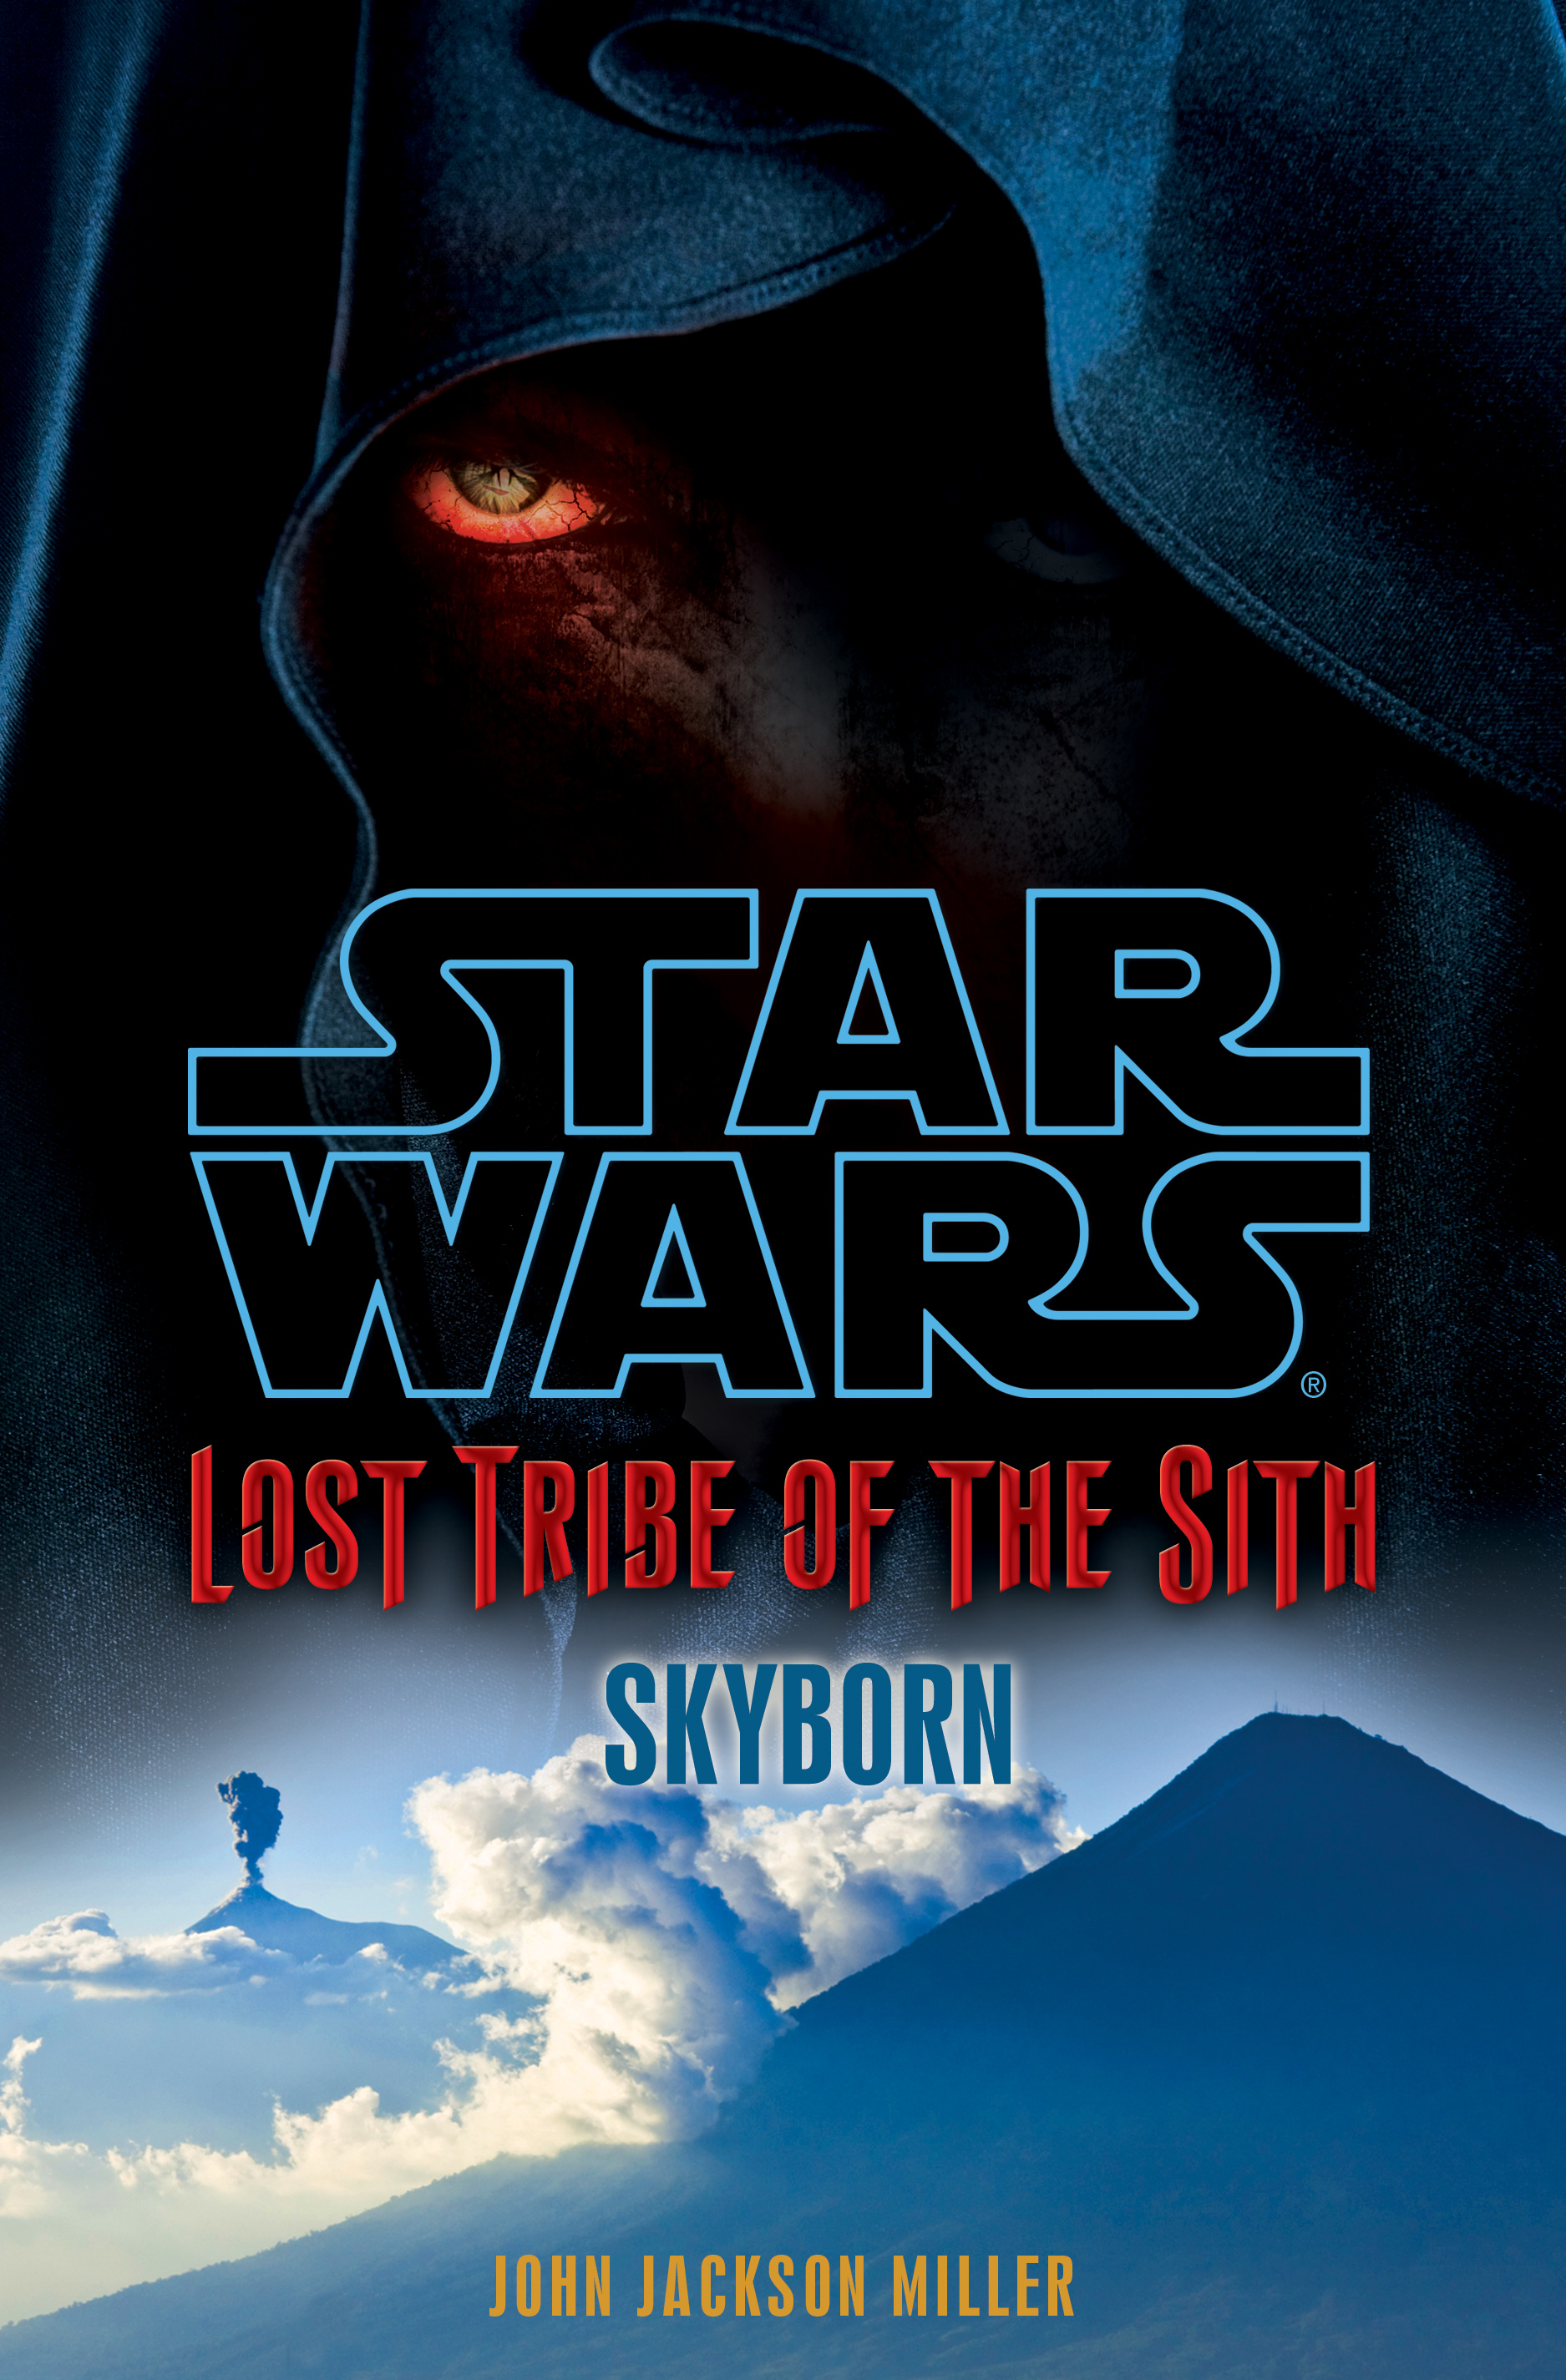 Download the tribe sith lost of ebook